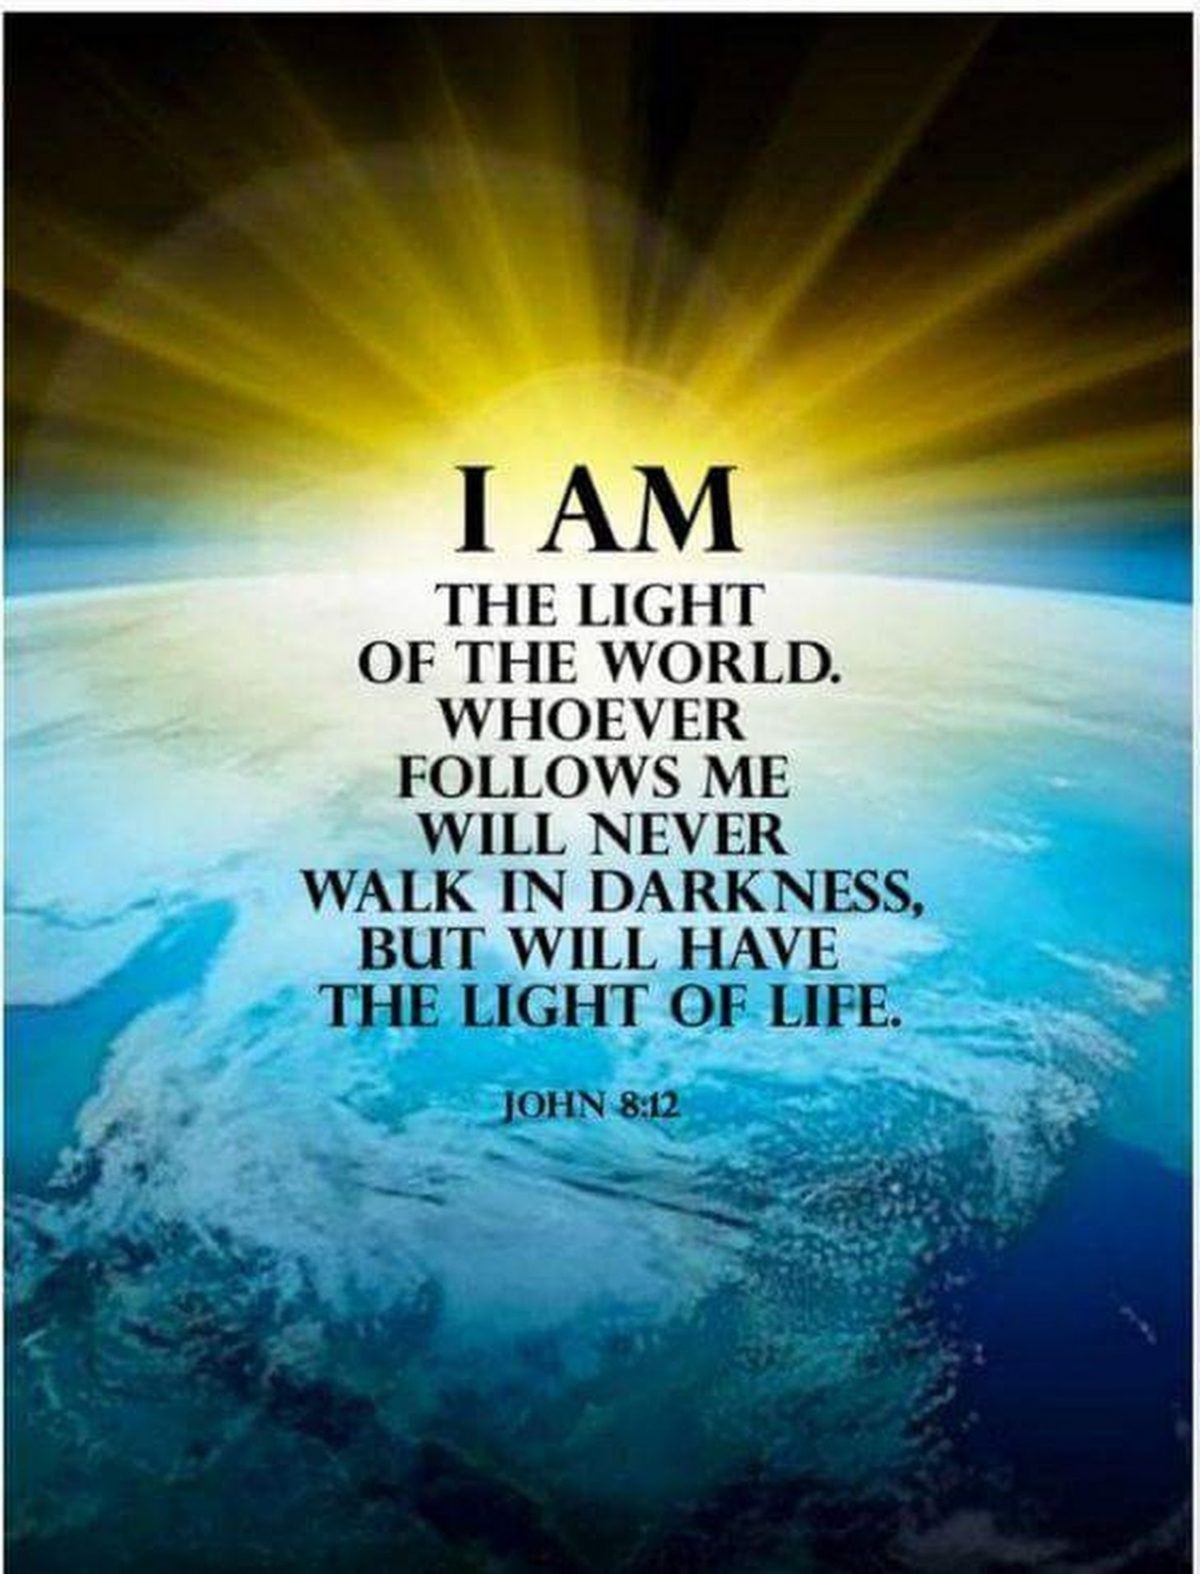 I Am the Light of the World